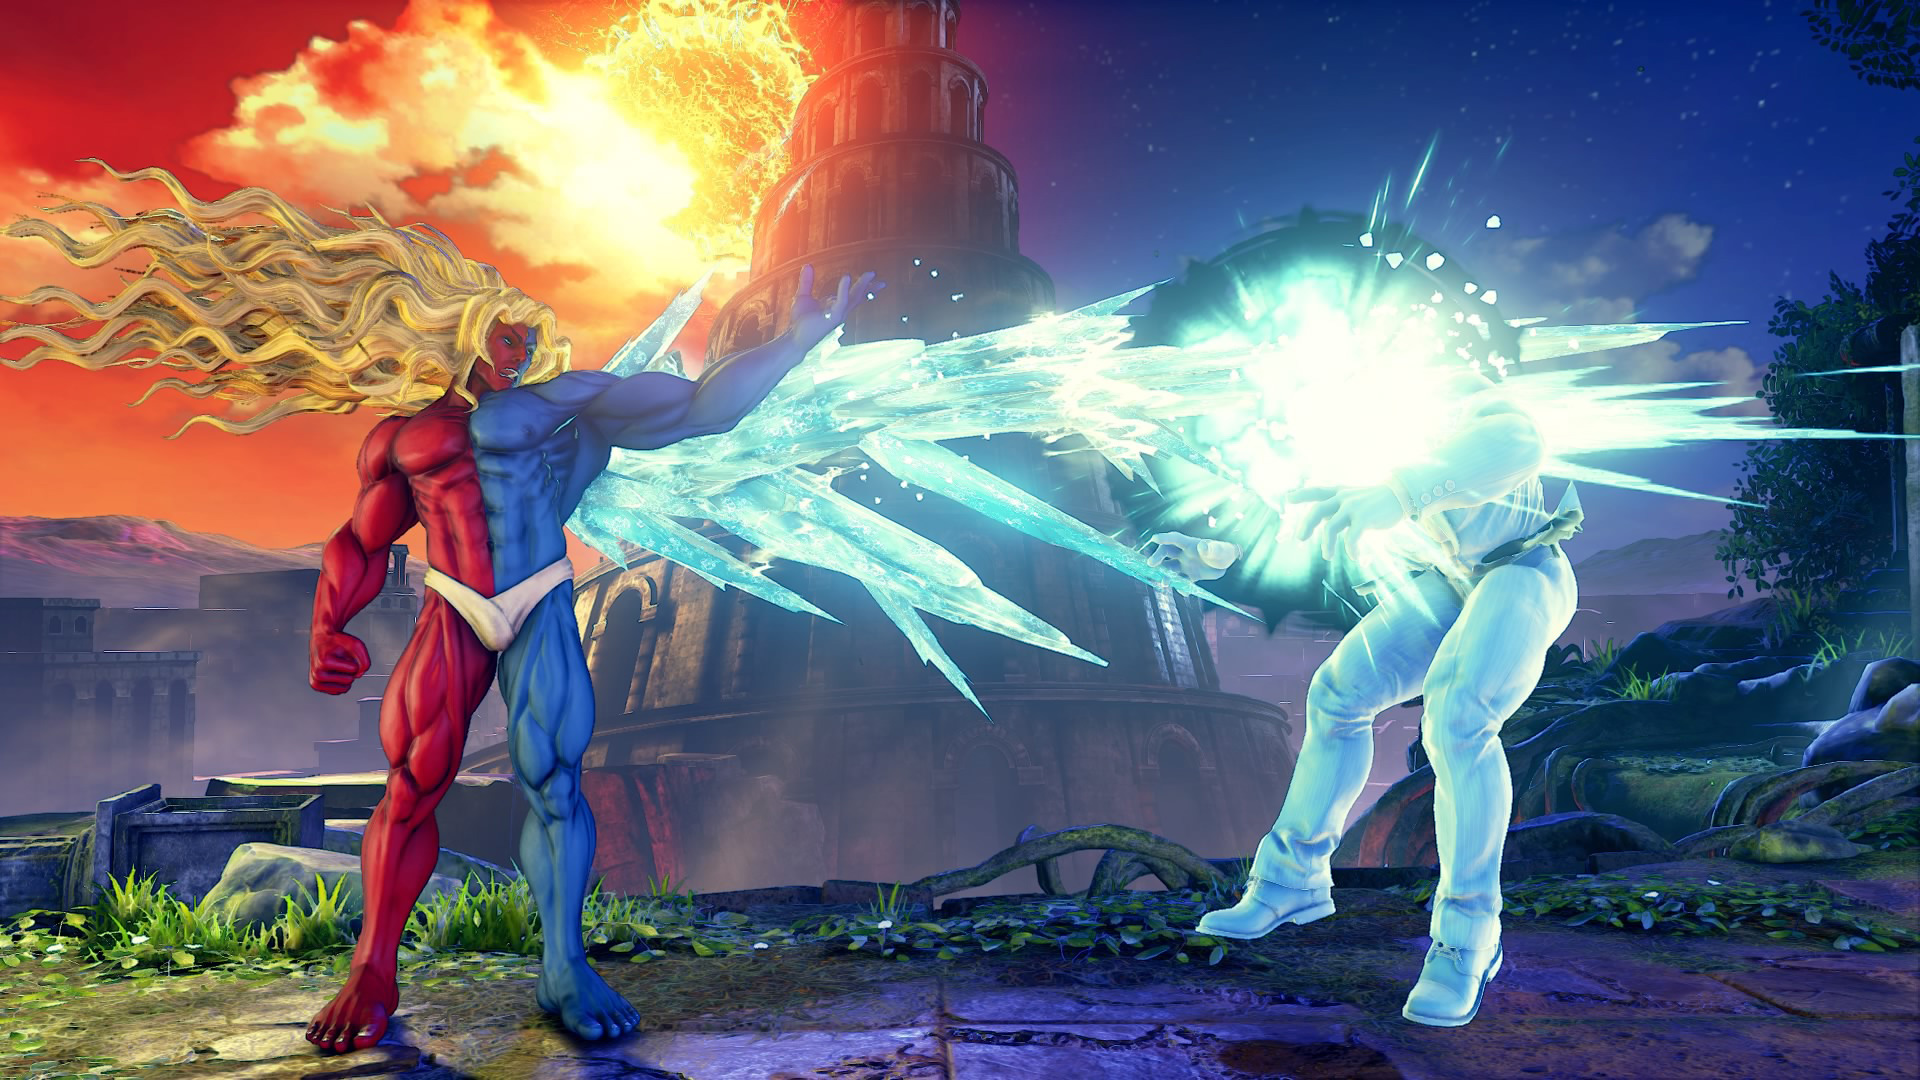 Capcom's restrictive new video and streaming policies garner some blowback, studio 'thanks everyone for feedback' screenshot